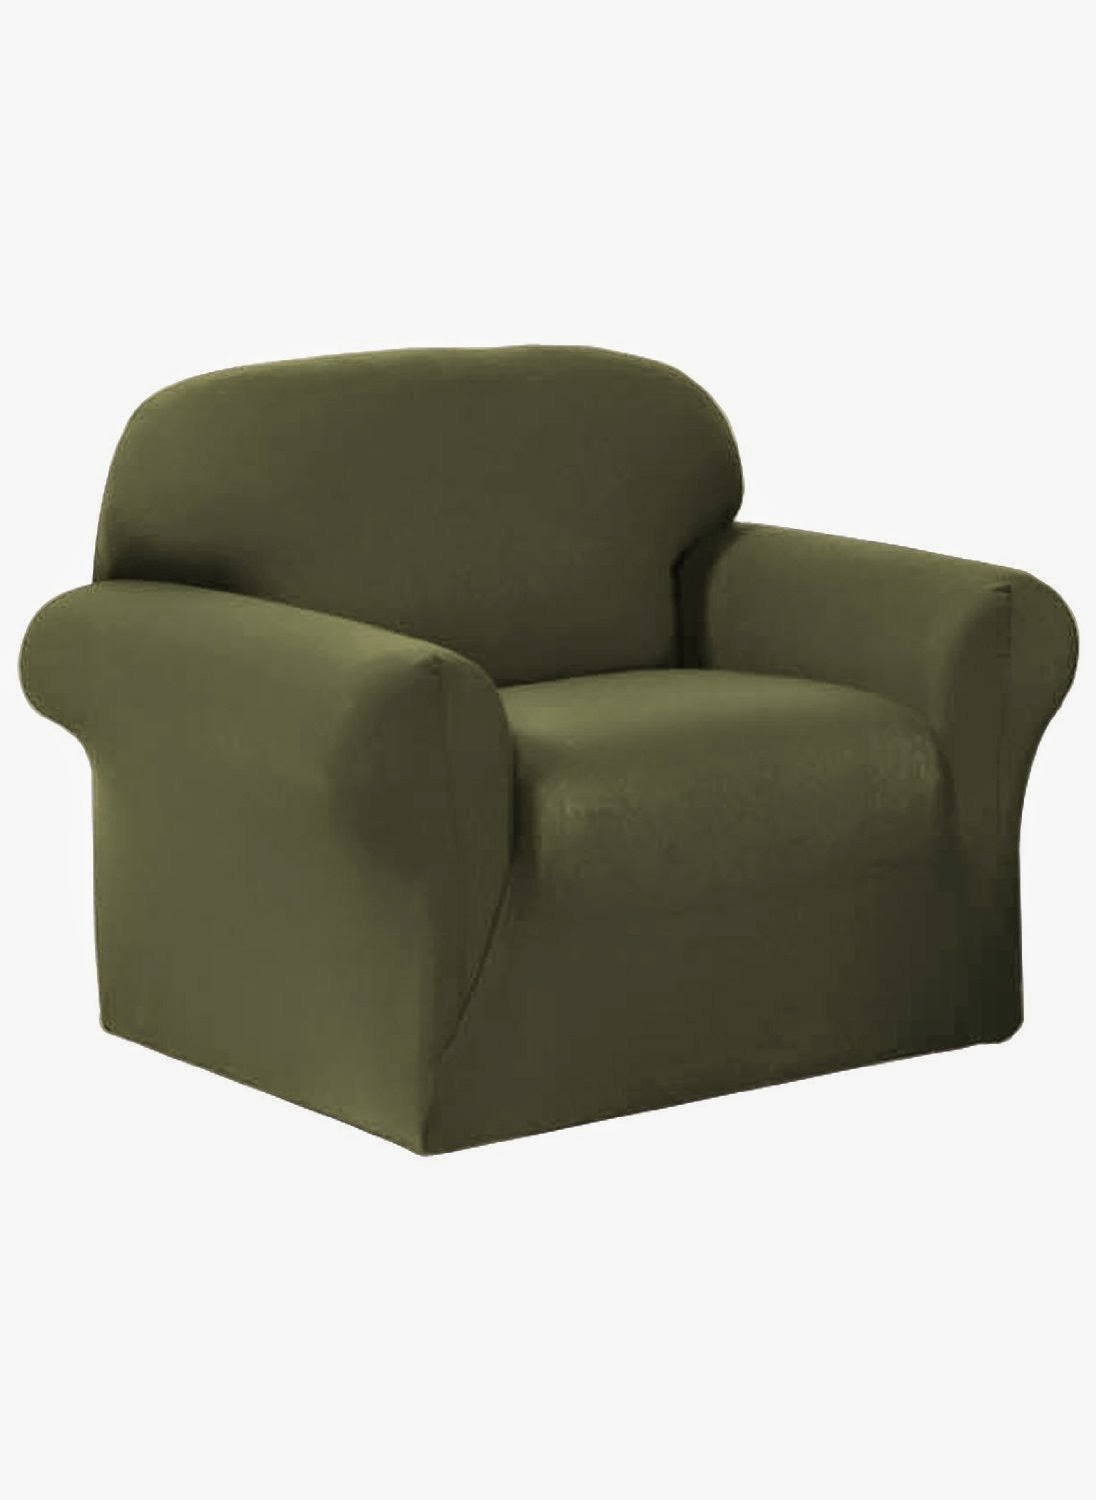 The Best Reclining Sofas Ratings Reviews: Double Recliner